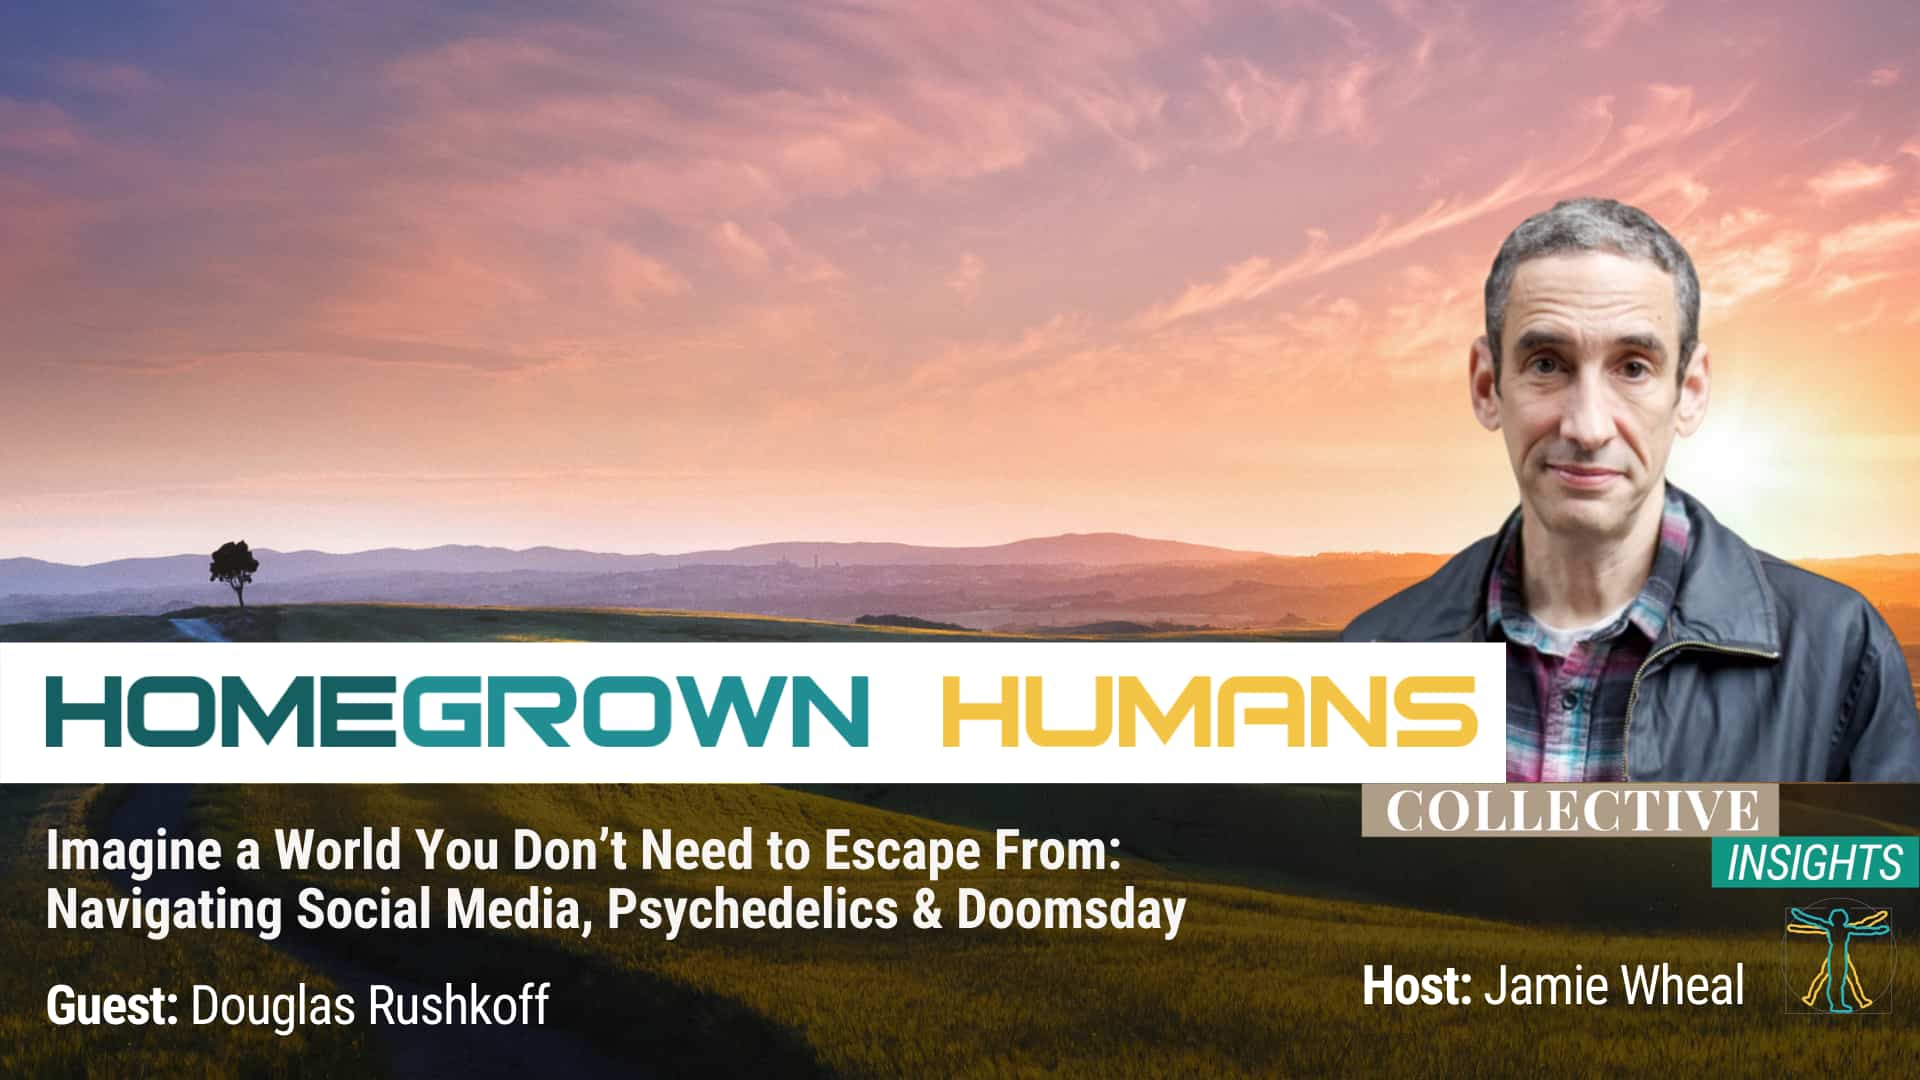 HomeGrown Humans - Douglas Rushkoff - Team Human - Hosted by Jamie Wheal